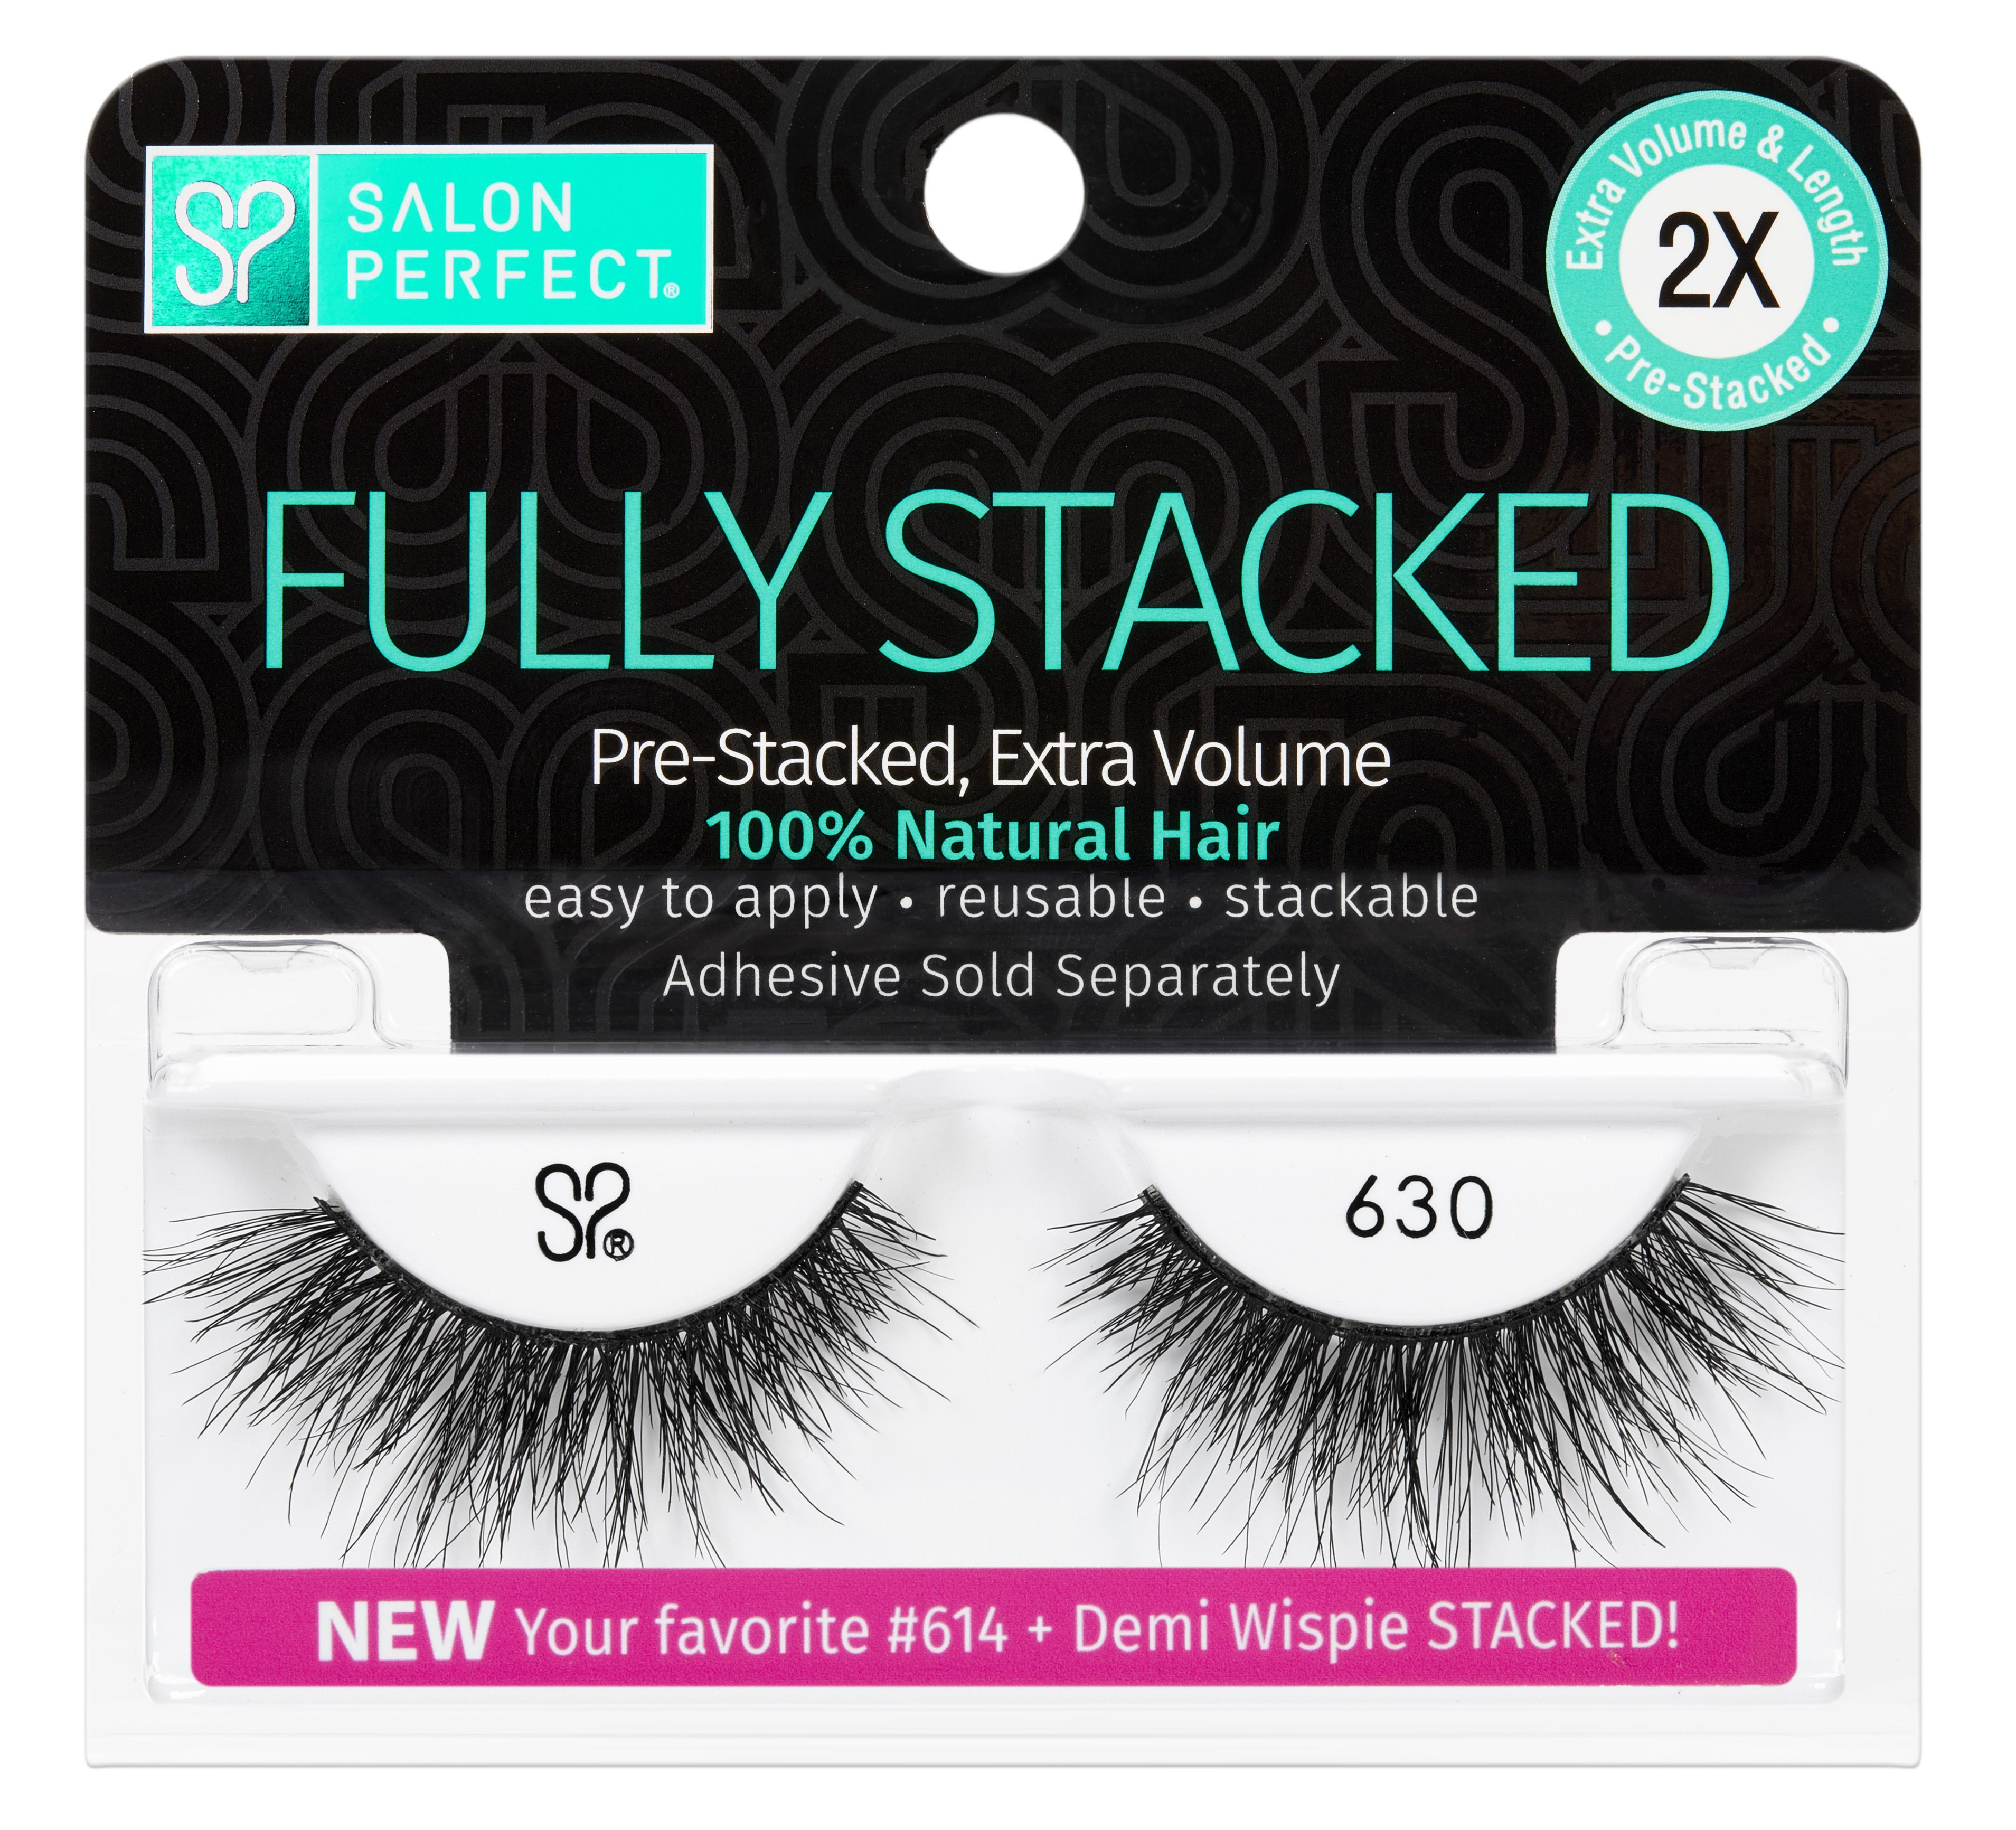 Fully Stacked 630 - For nearly 20 years Salon Perfect has ...